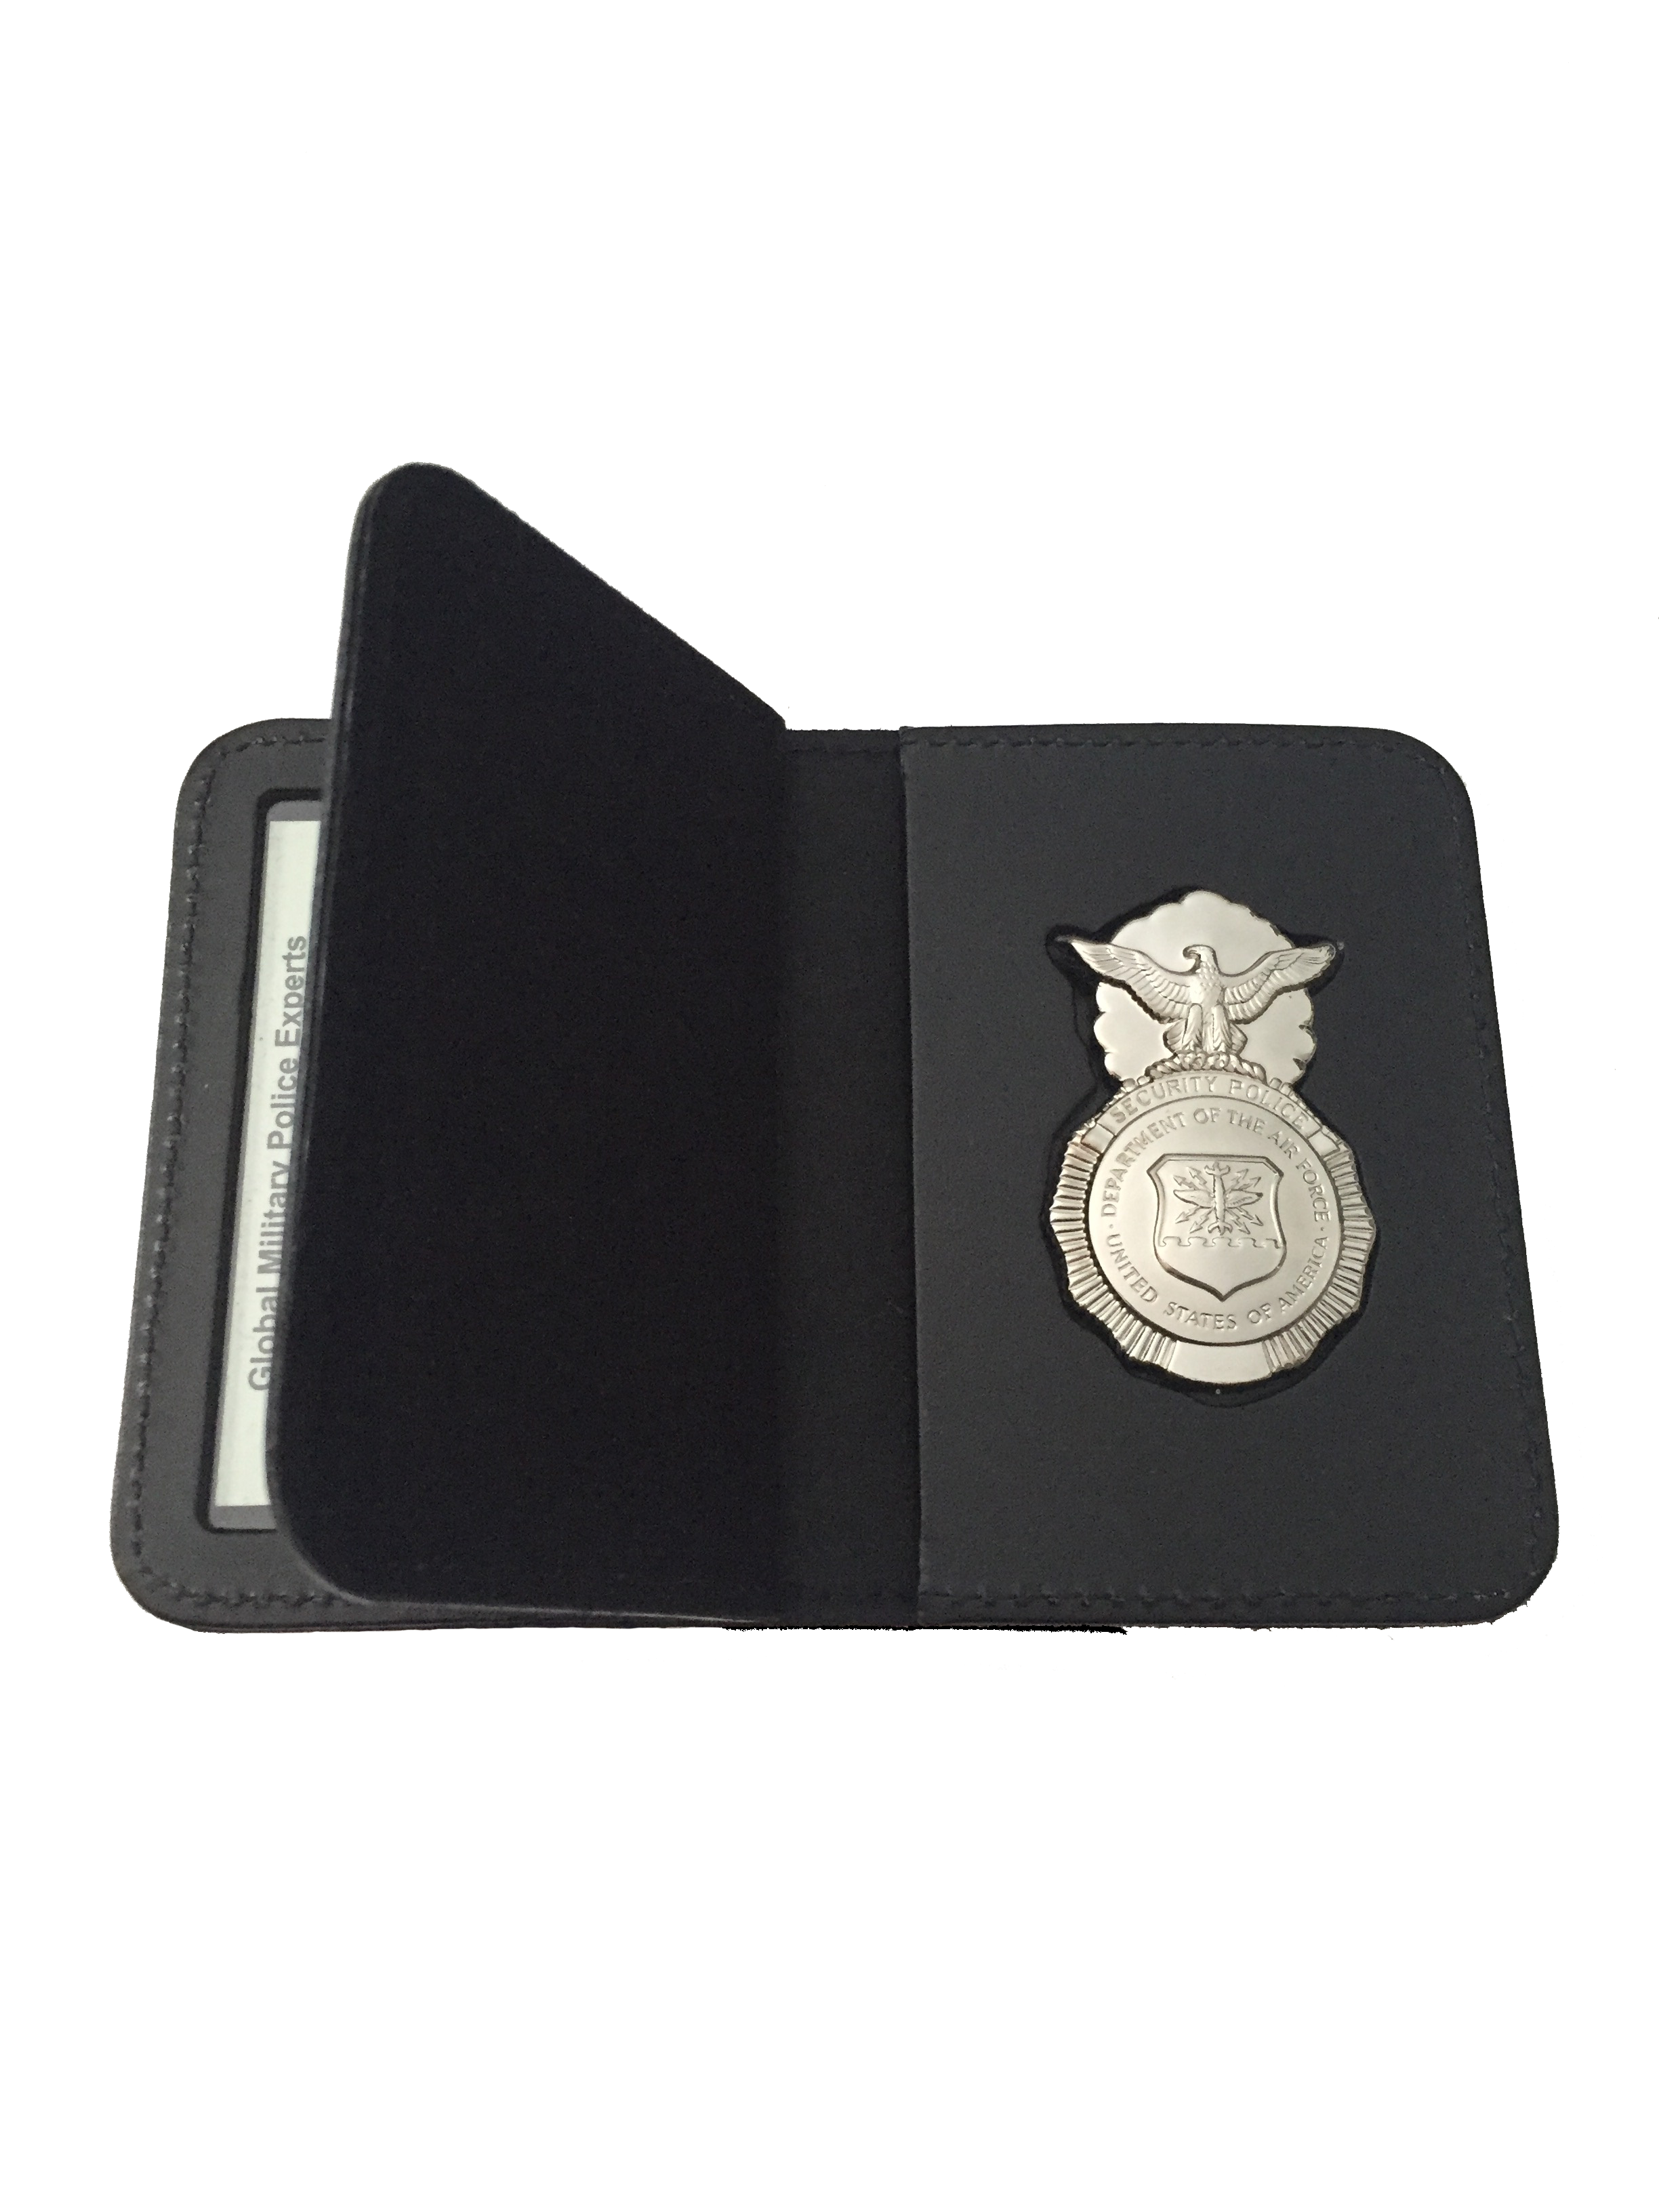 LEOSA USAF SP DUTY LEATHER RECESSED BADGE DOUBLE ID CASE & BADGE